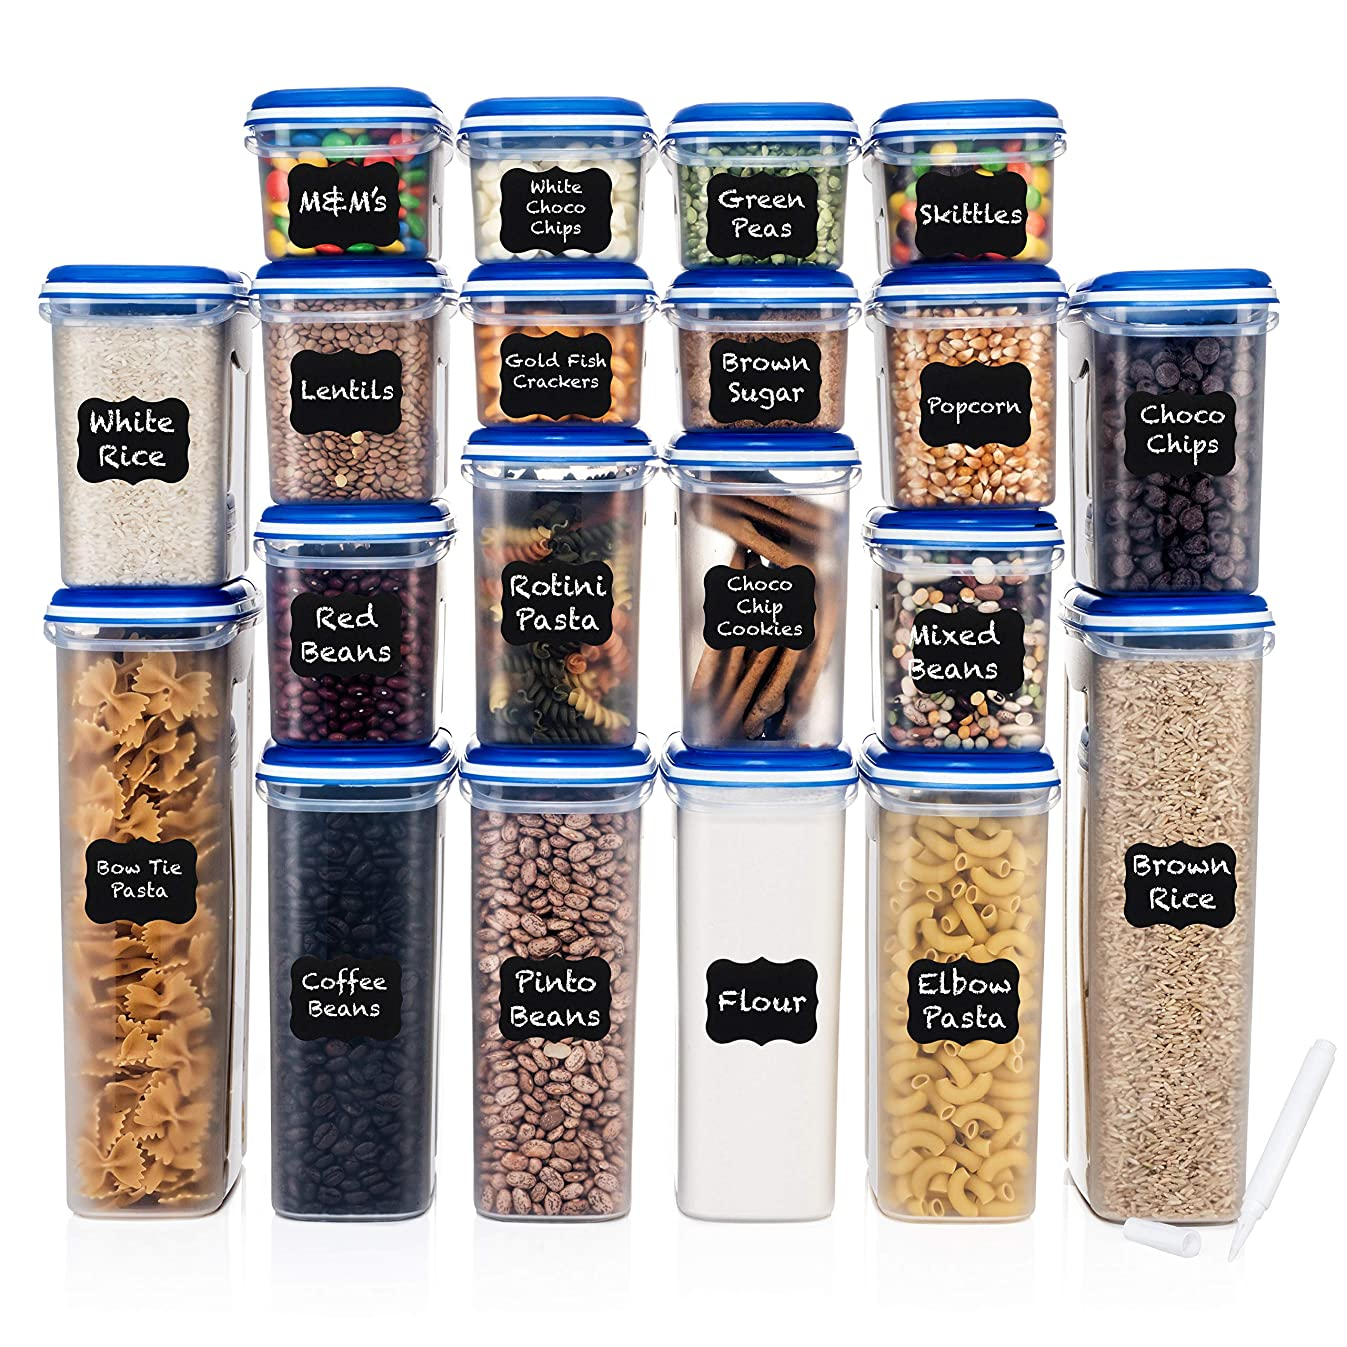 LARGEST Set of 40 Pc Food Storage Containers (20 Container Set) Shazo Airtight Dry Food Space saver w/Innovative Dual Utility Interchangeable Lid, FREE 27 Chalkboard Labels + Marker - One Lid Fits All